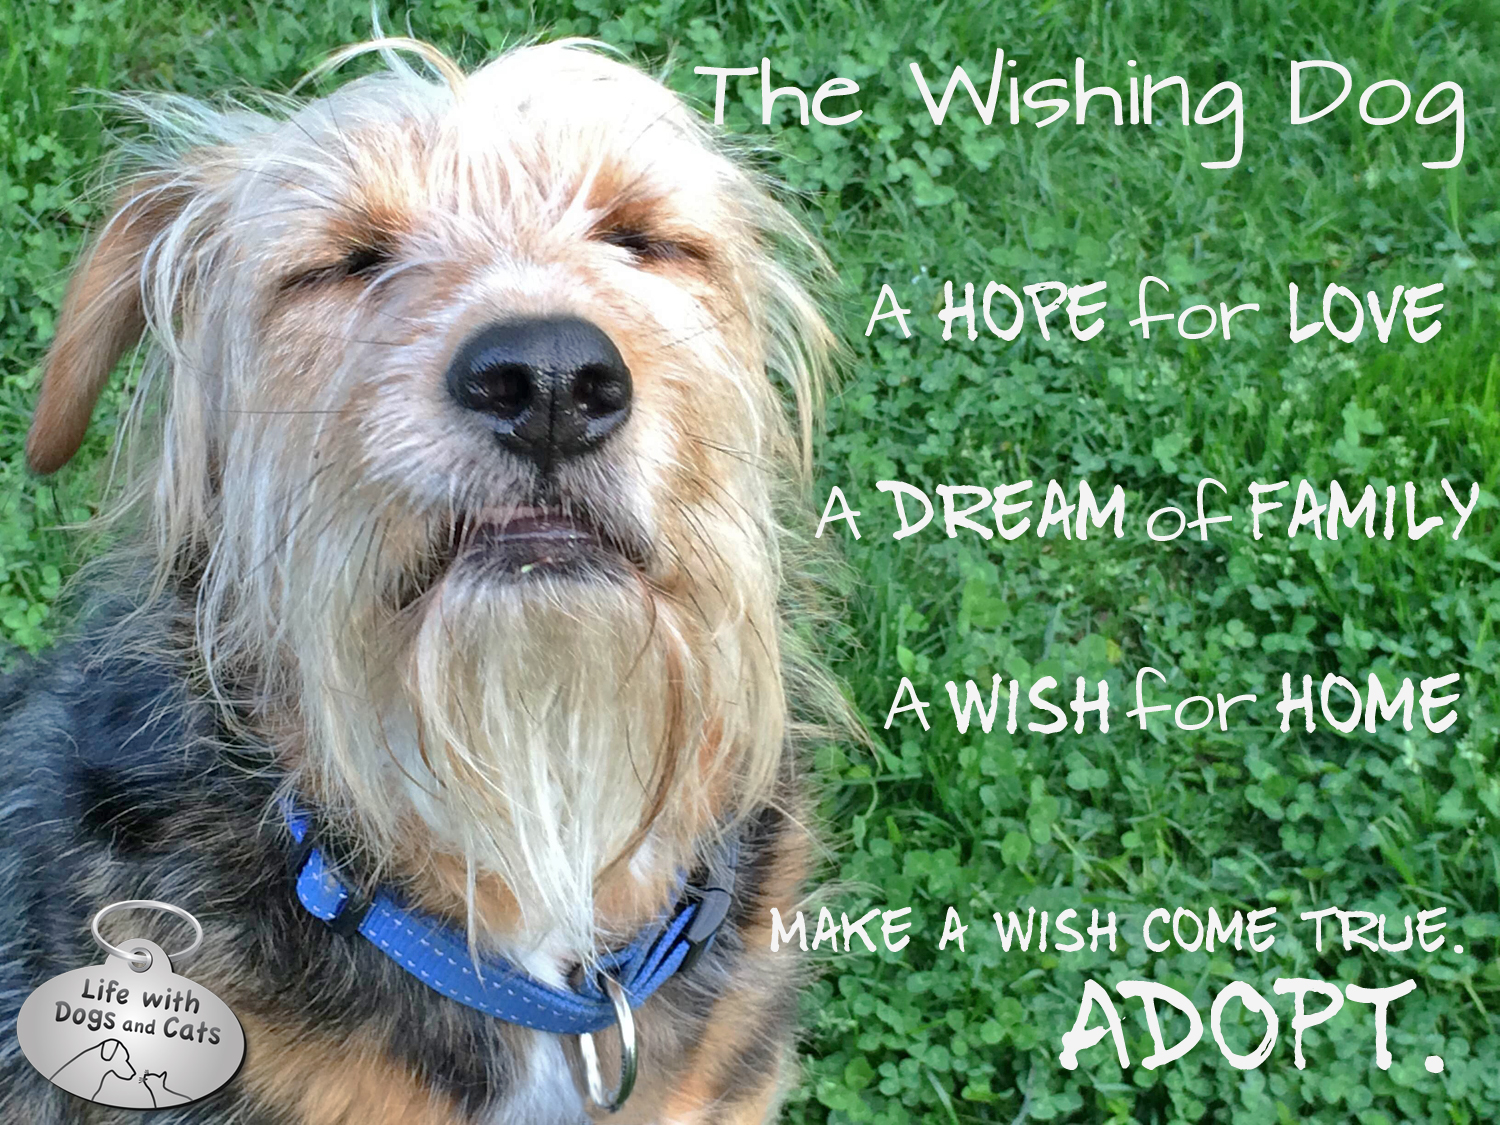 Make a wish come true. Adopt.